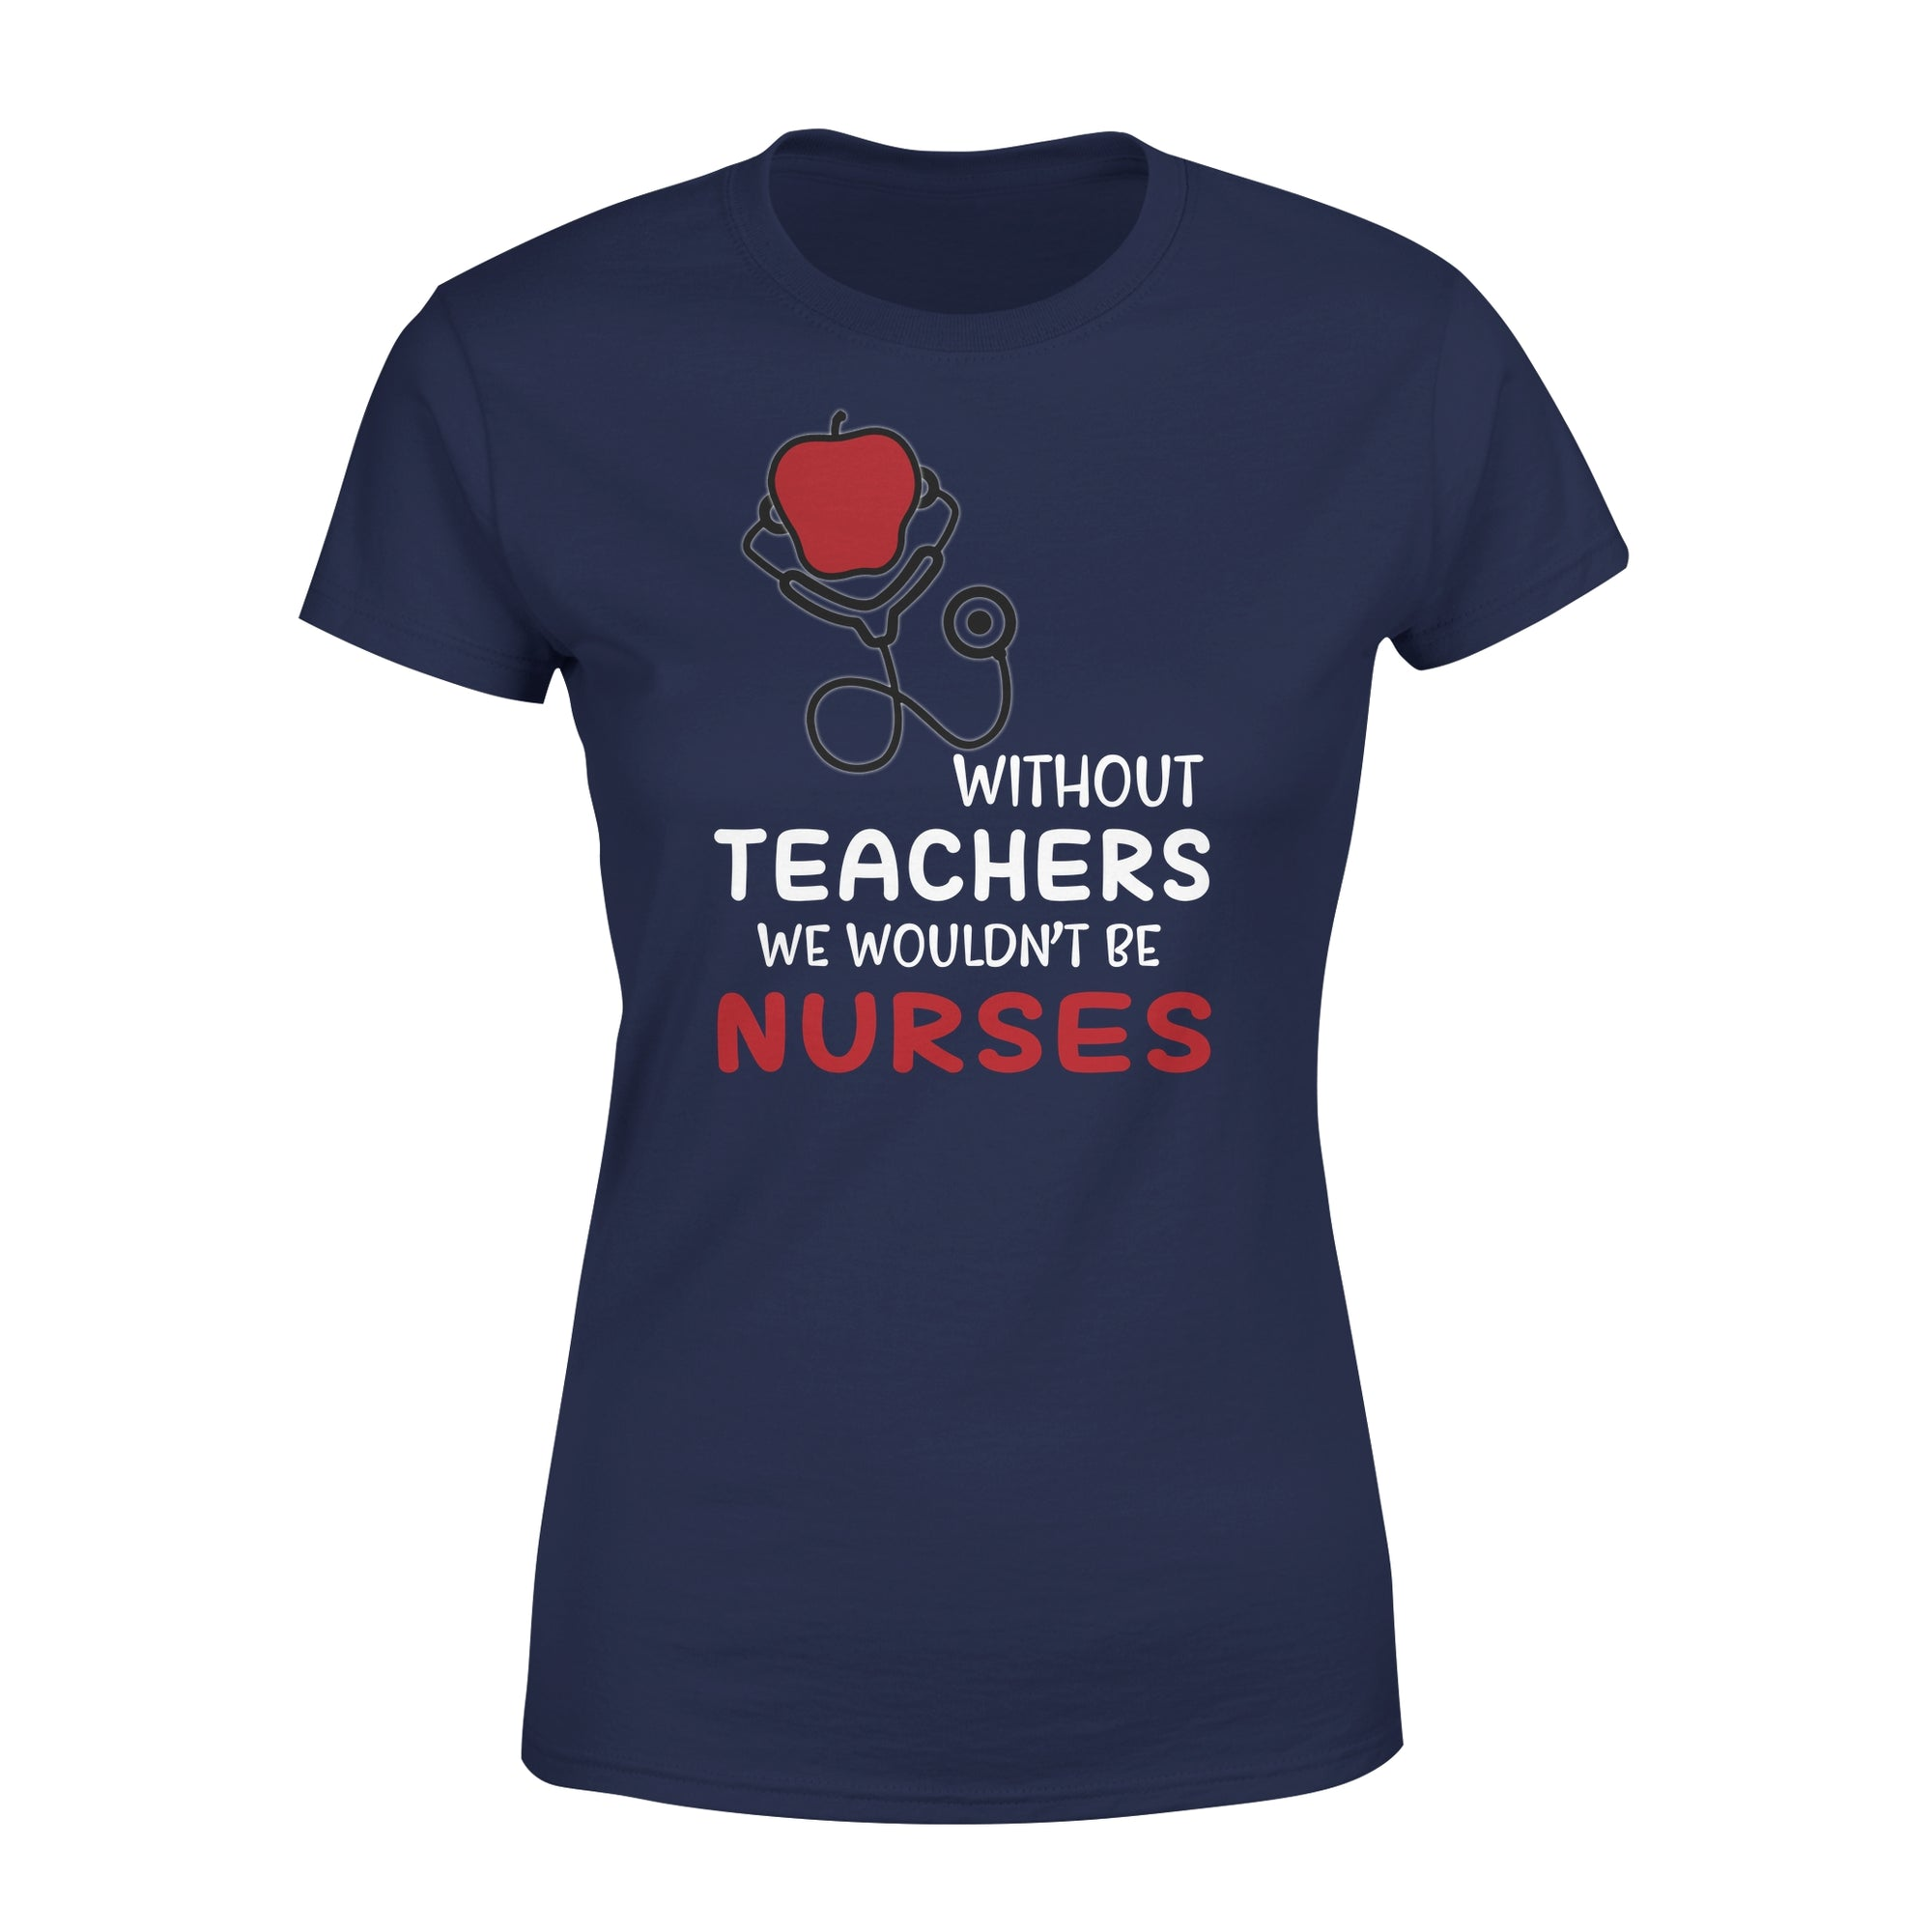 VIRA Premium Women's Tee for awesome teachers & nurses